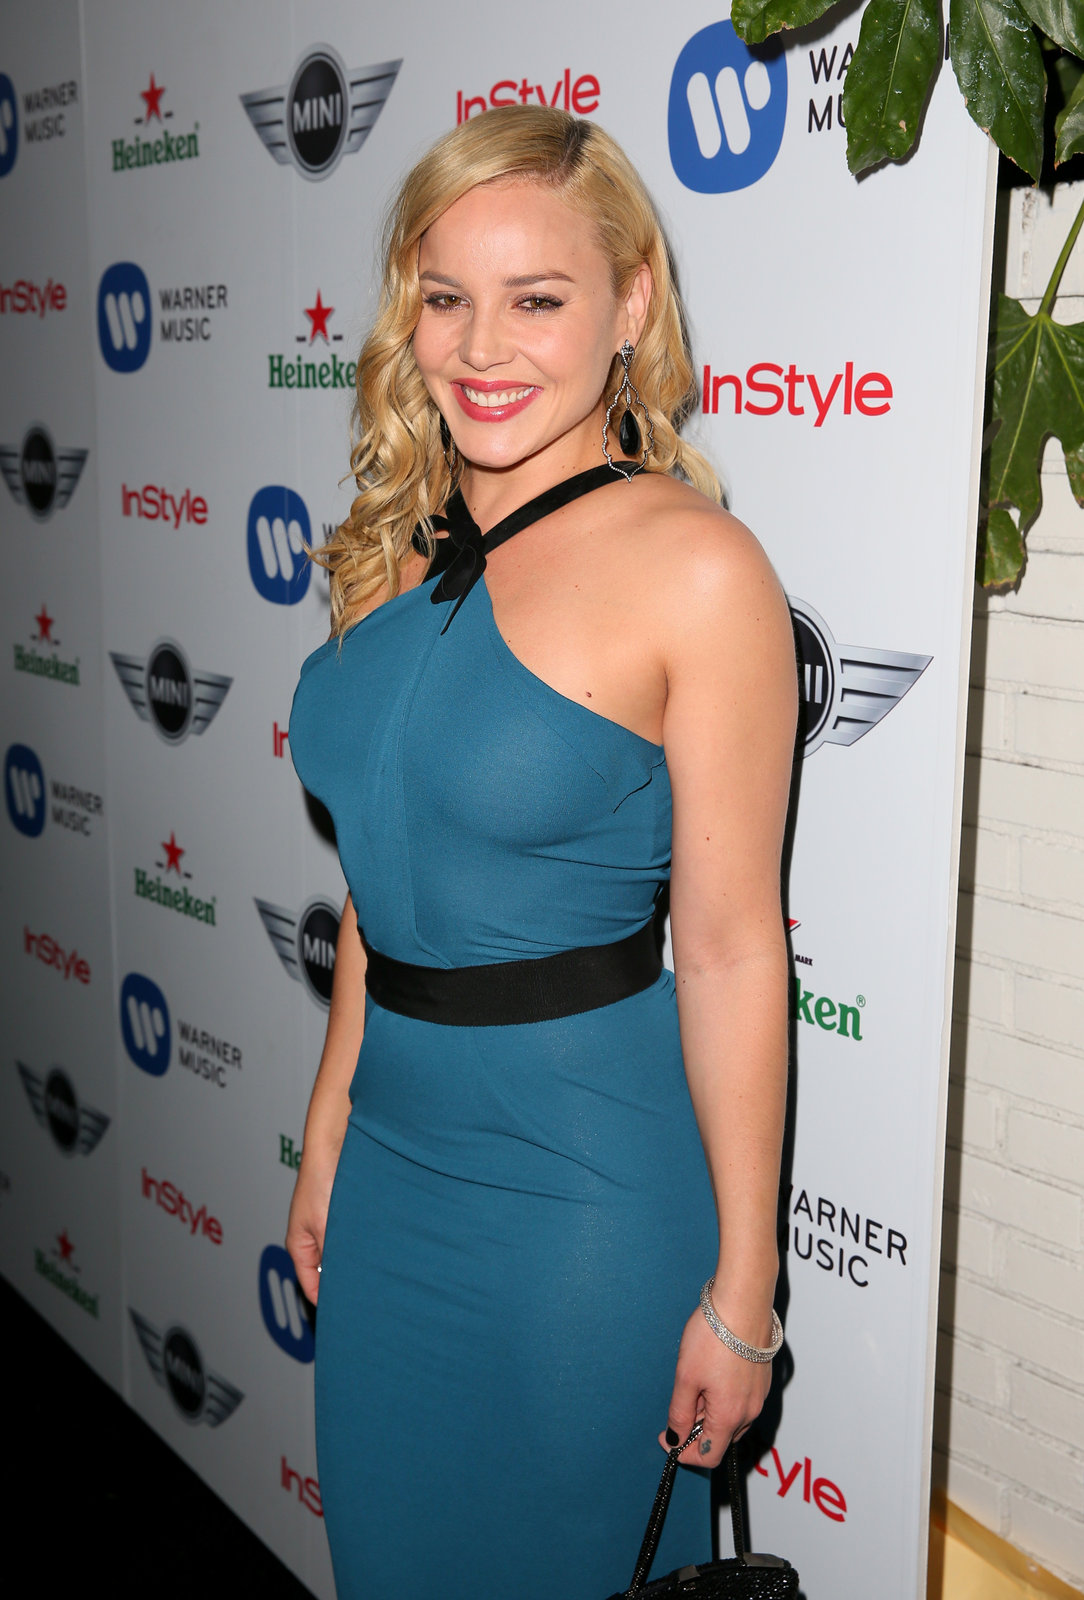 Abbie Cornish – grand @ Warner Music Group 2013 Grammy festival Adz7IgS5